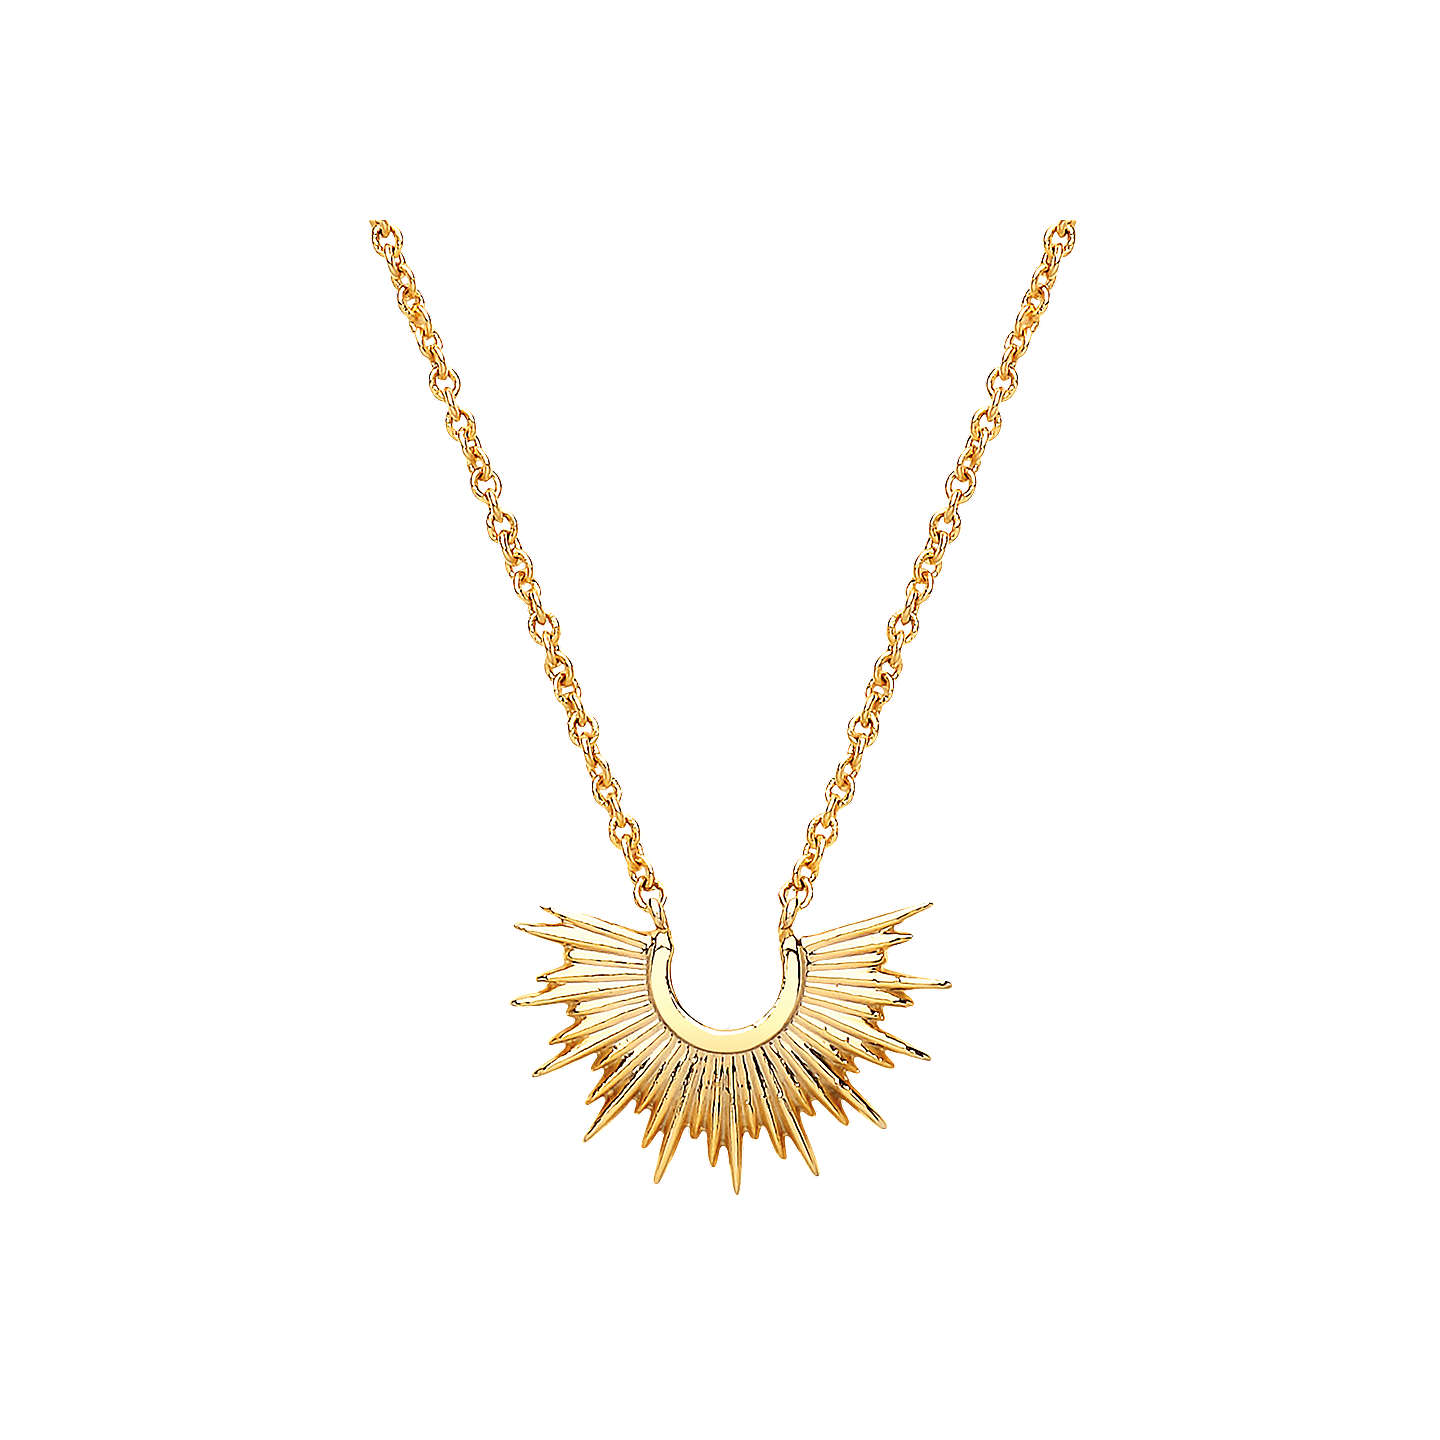 pinkpowder long necklace com pearl sunburst pendant